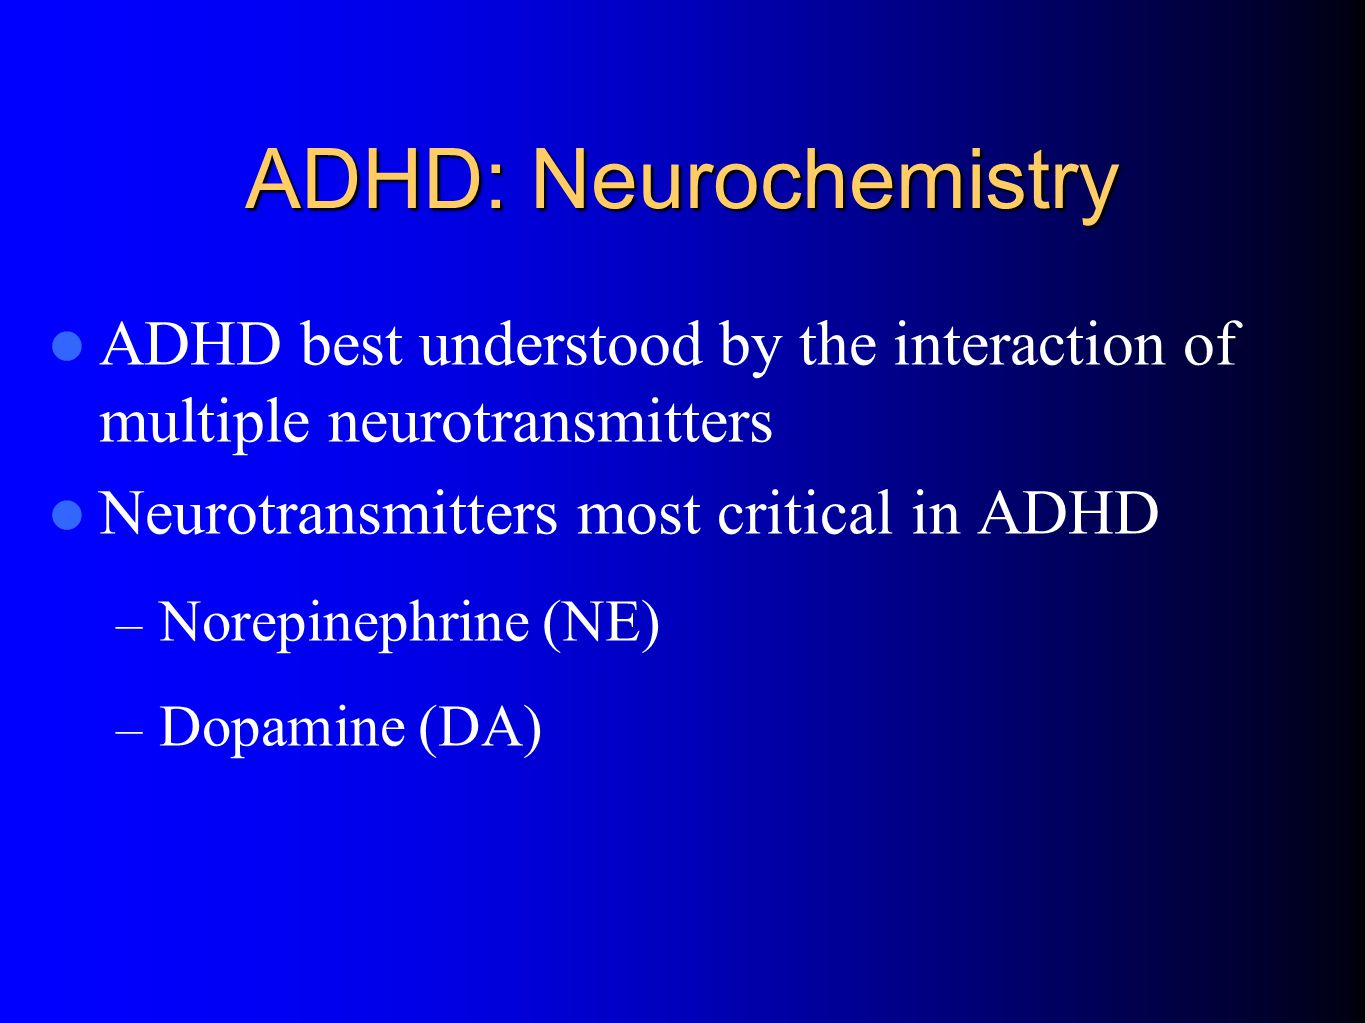 ADHD: Neurochemistry ADHD best understood by the interaction of multiple neurotransmitters Neurotransmitters most critical in ADHD – Norepinephrine (NE) – Dopamine (DA)